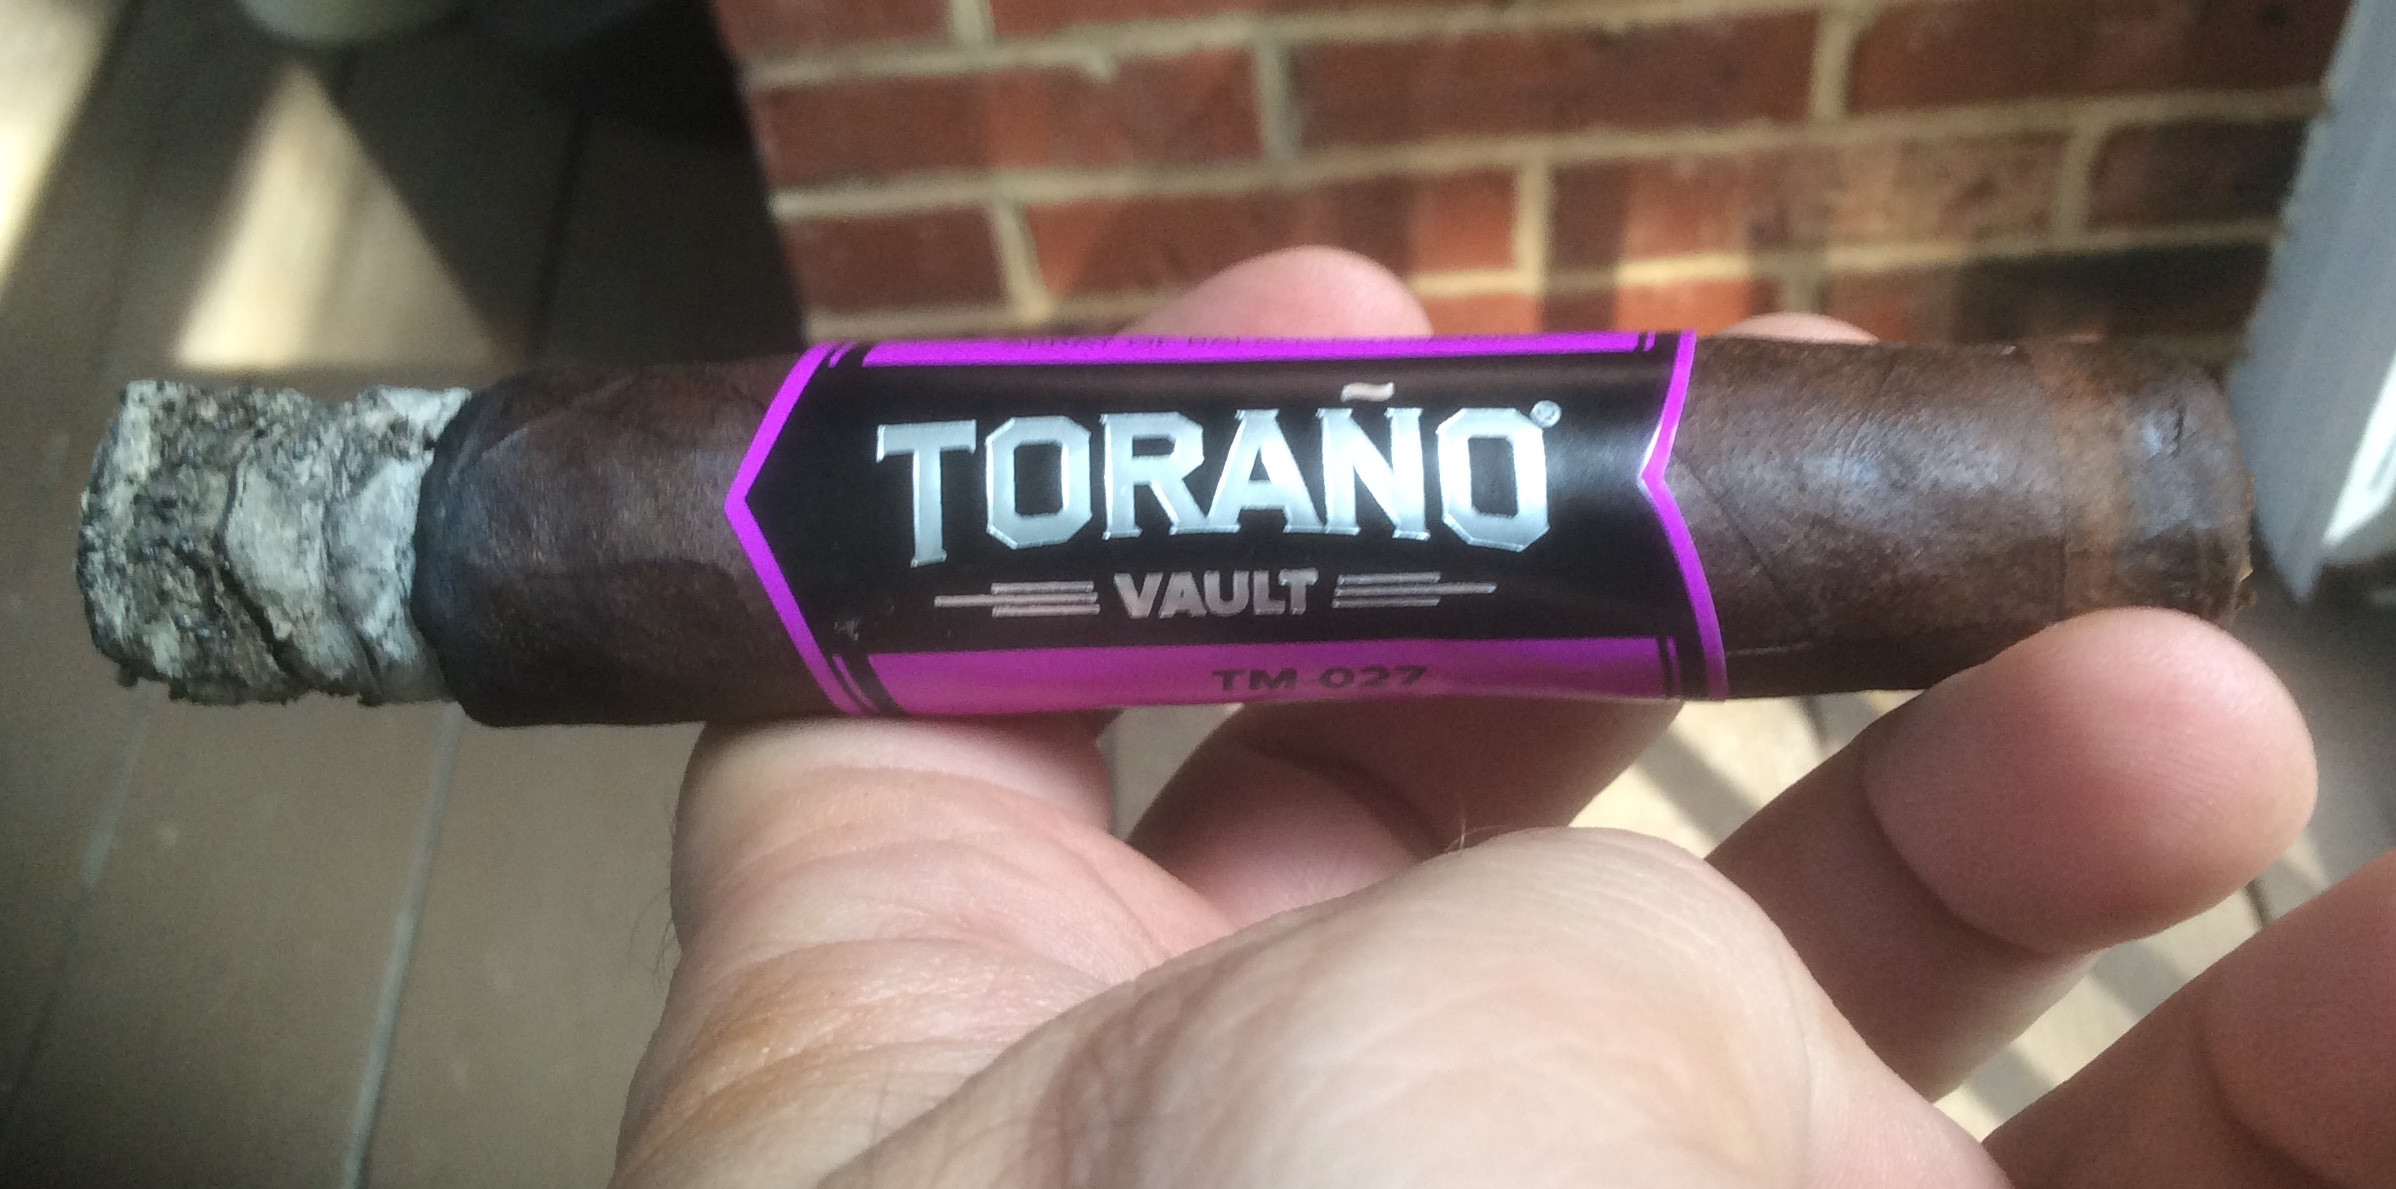 torano_vault_tm-027_robusto-burn